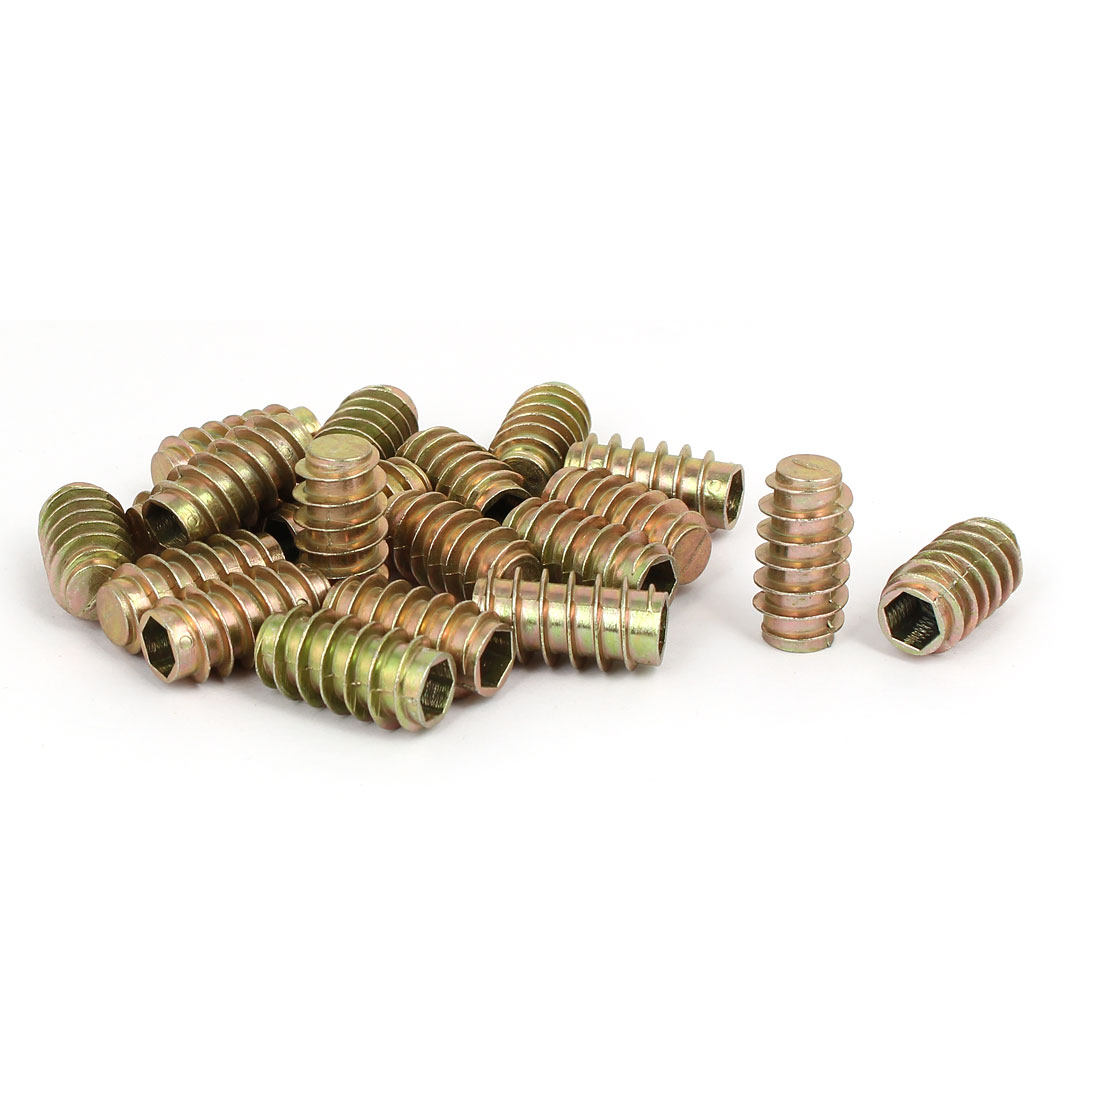 Furniture Zinc Alloy Blind Hole Hex Socket Insert Screws E-Nuts M8x30mm 20pcs